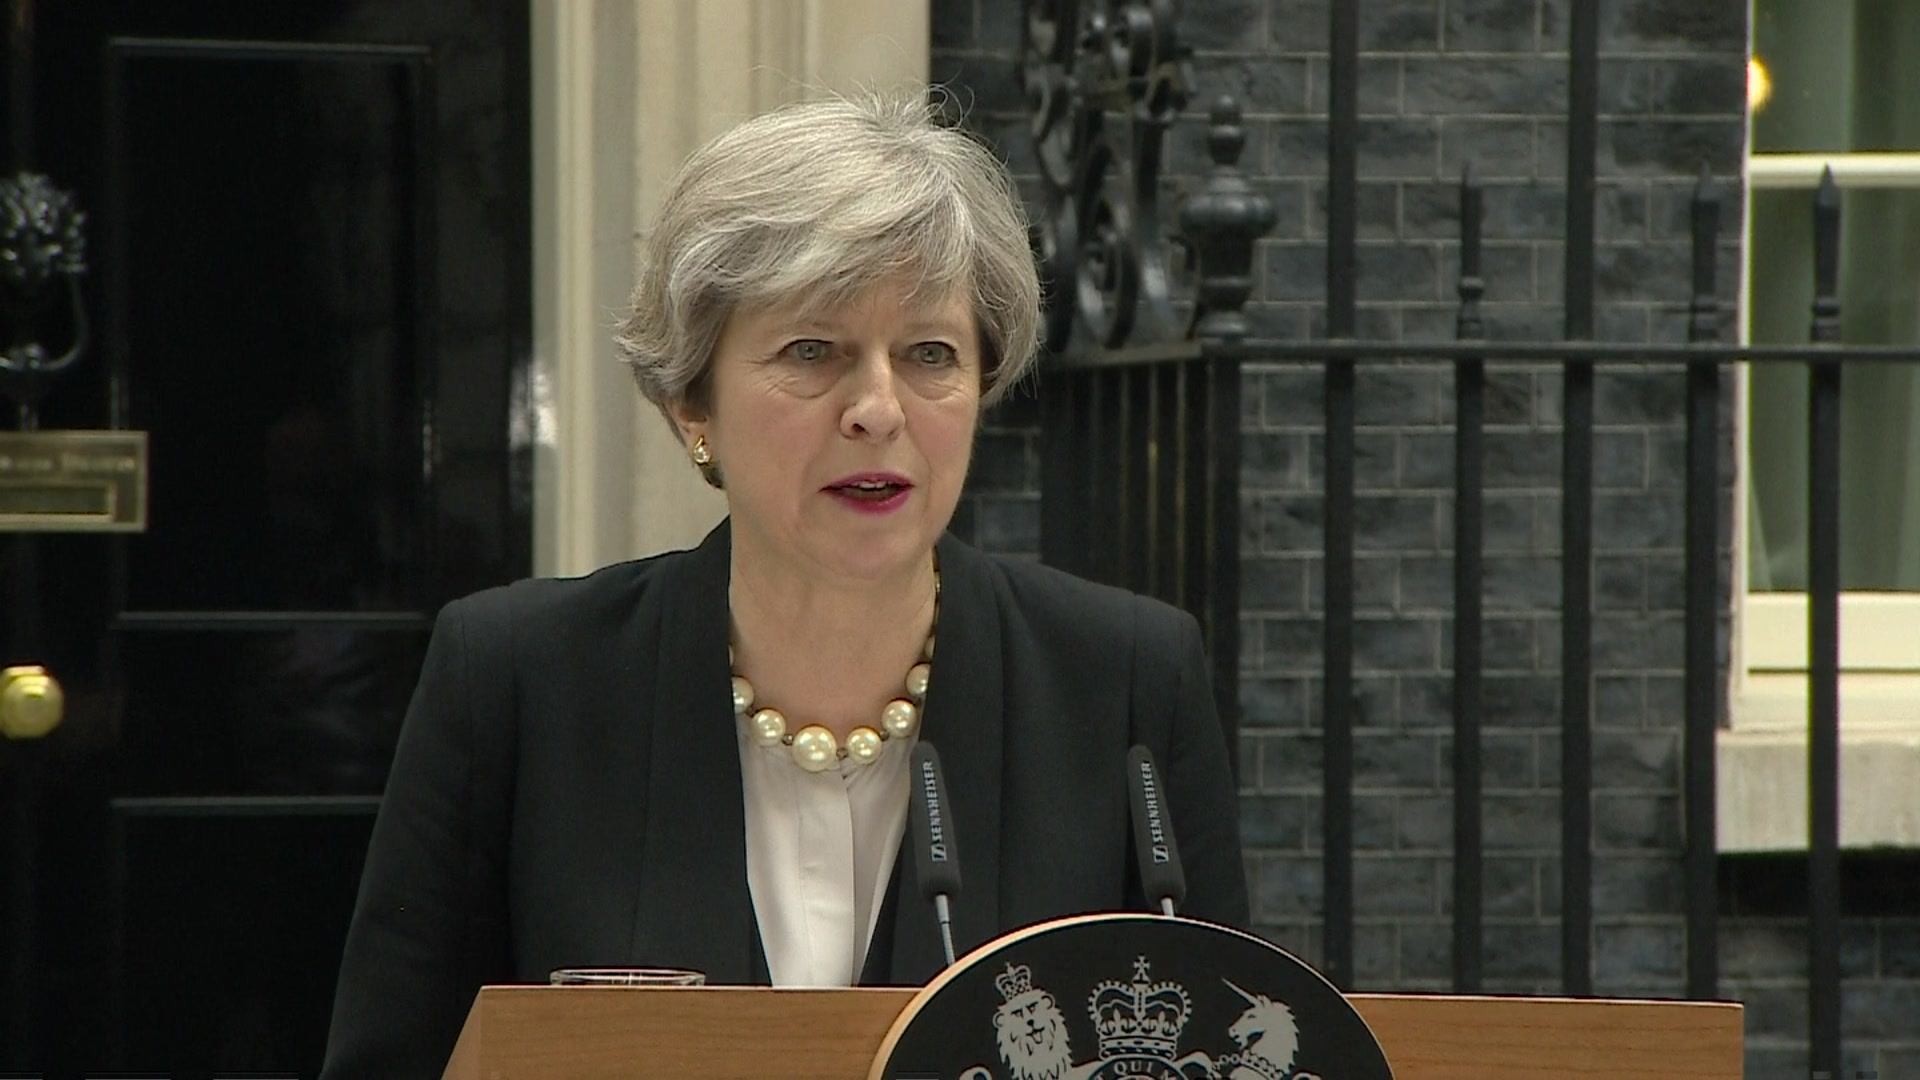 Manchester attack: PM condemns 'sickening, cowardly' act